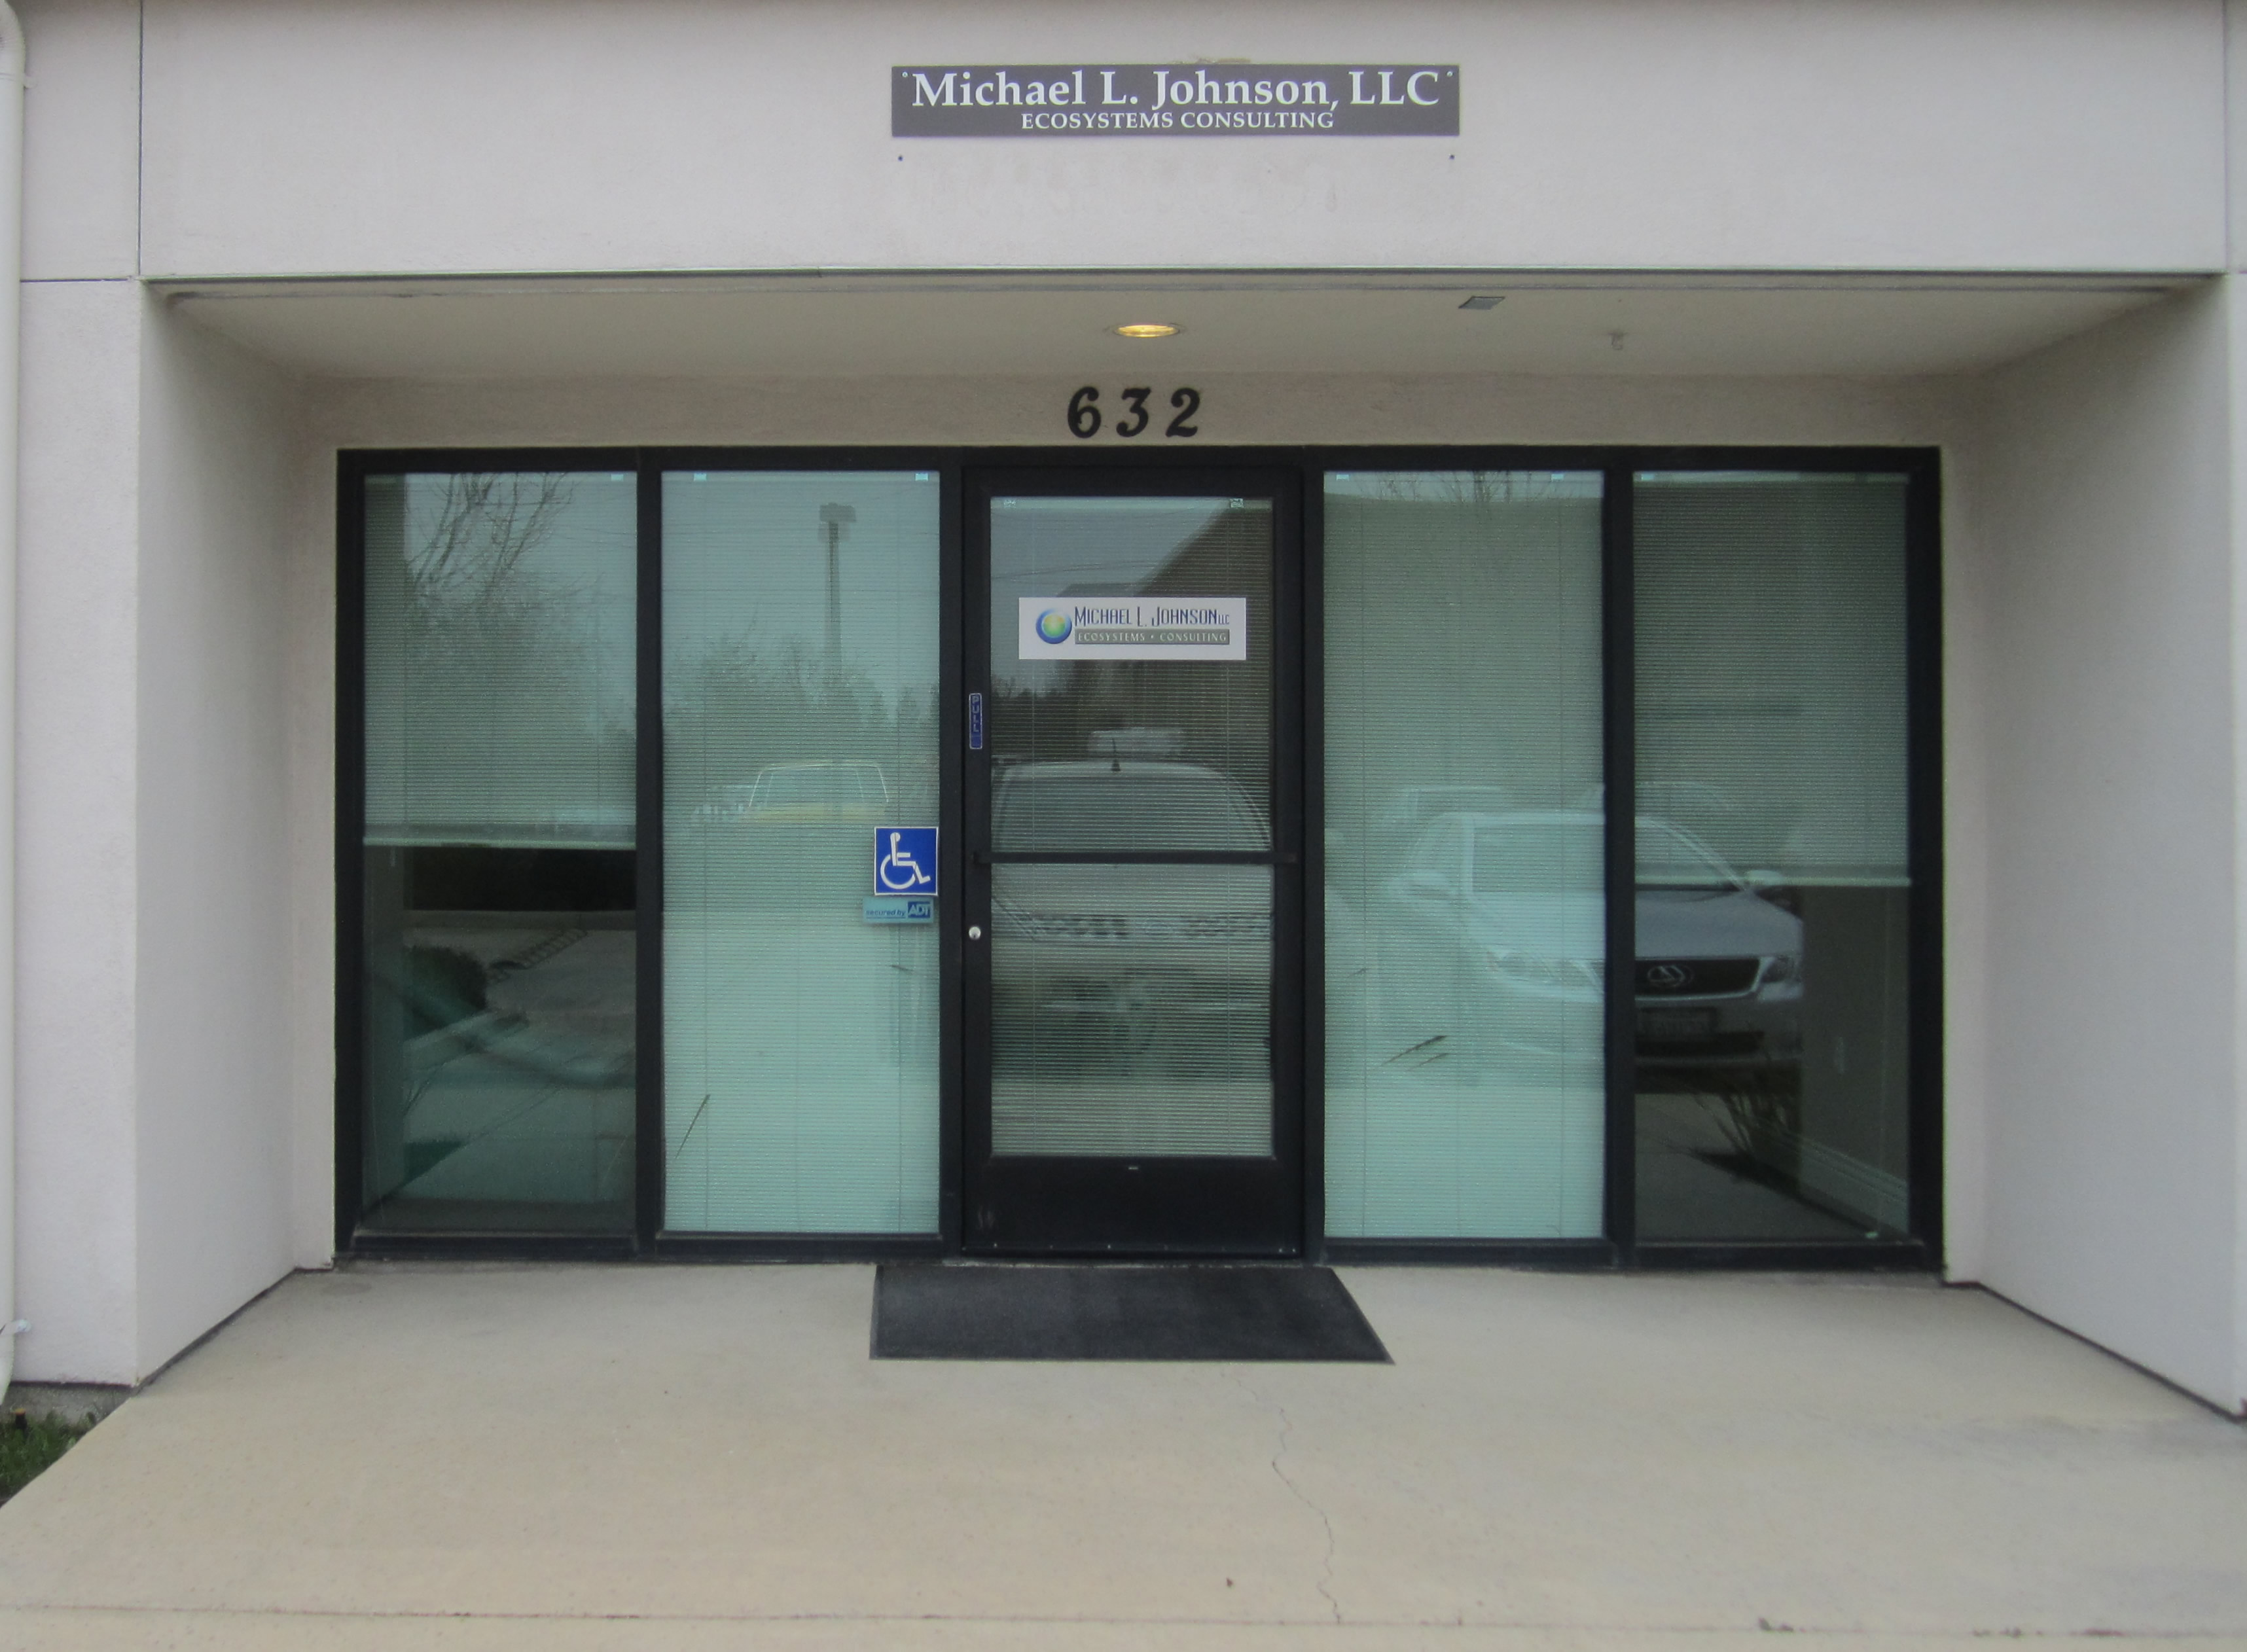 Click on image to see a larger view of the entrance to the Michael L. Johnson, LLC Office